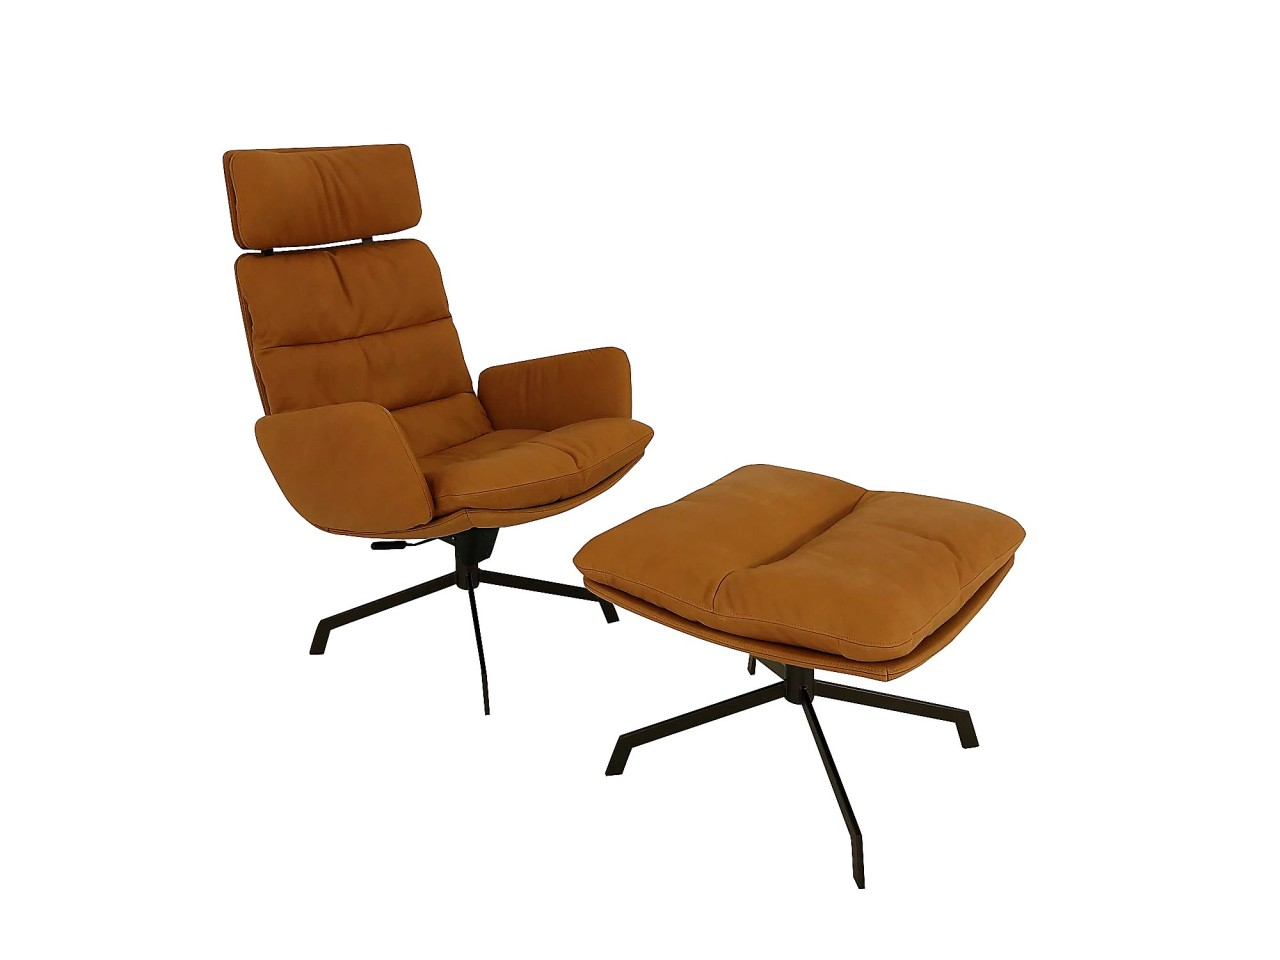 Sessel Synonym Kff Arva Lounge Sessel In Leder Silk Cognac Mit Wipp Funktion Und Hocker